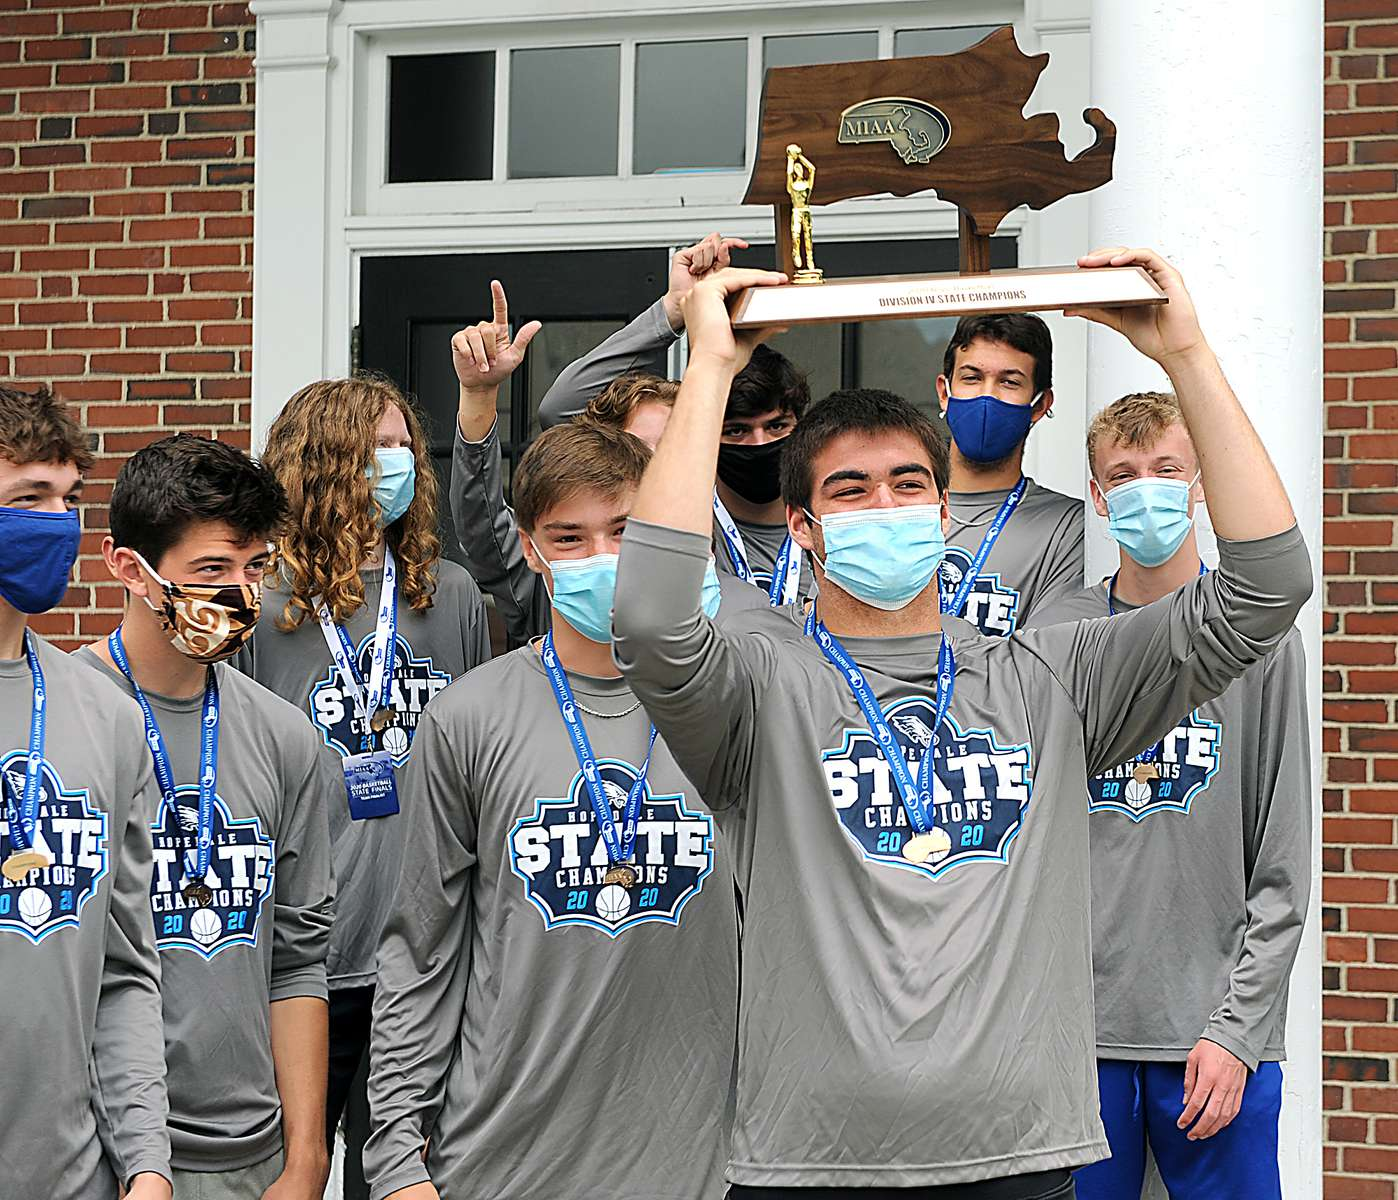 7/8/20-- HOPEDALE-- Hopedale High School boys basketball team captain Dan Liberatore hoists the co-state championship trophy outside the Draper Gym Wednesday morning. [Daily News and Wicked Local Staff Photo/Art Illman]